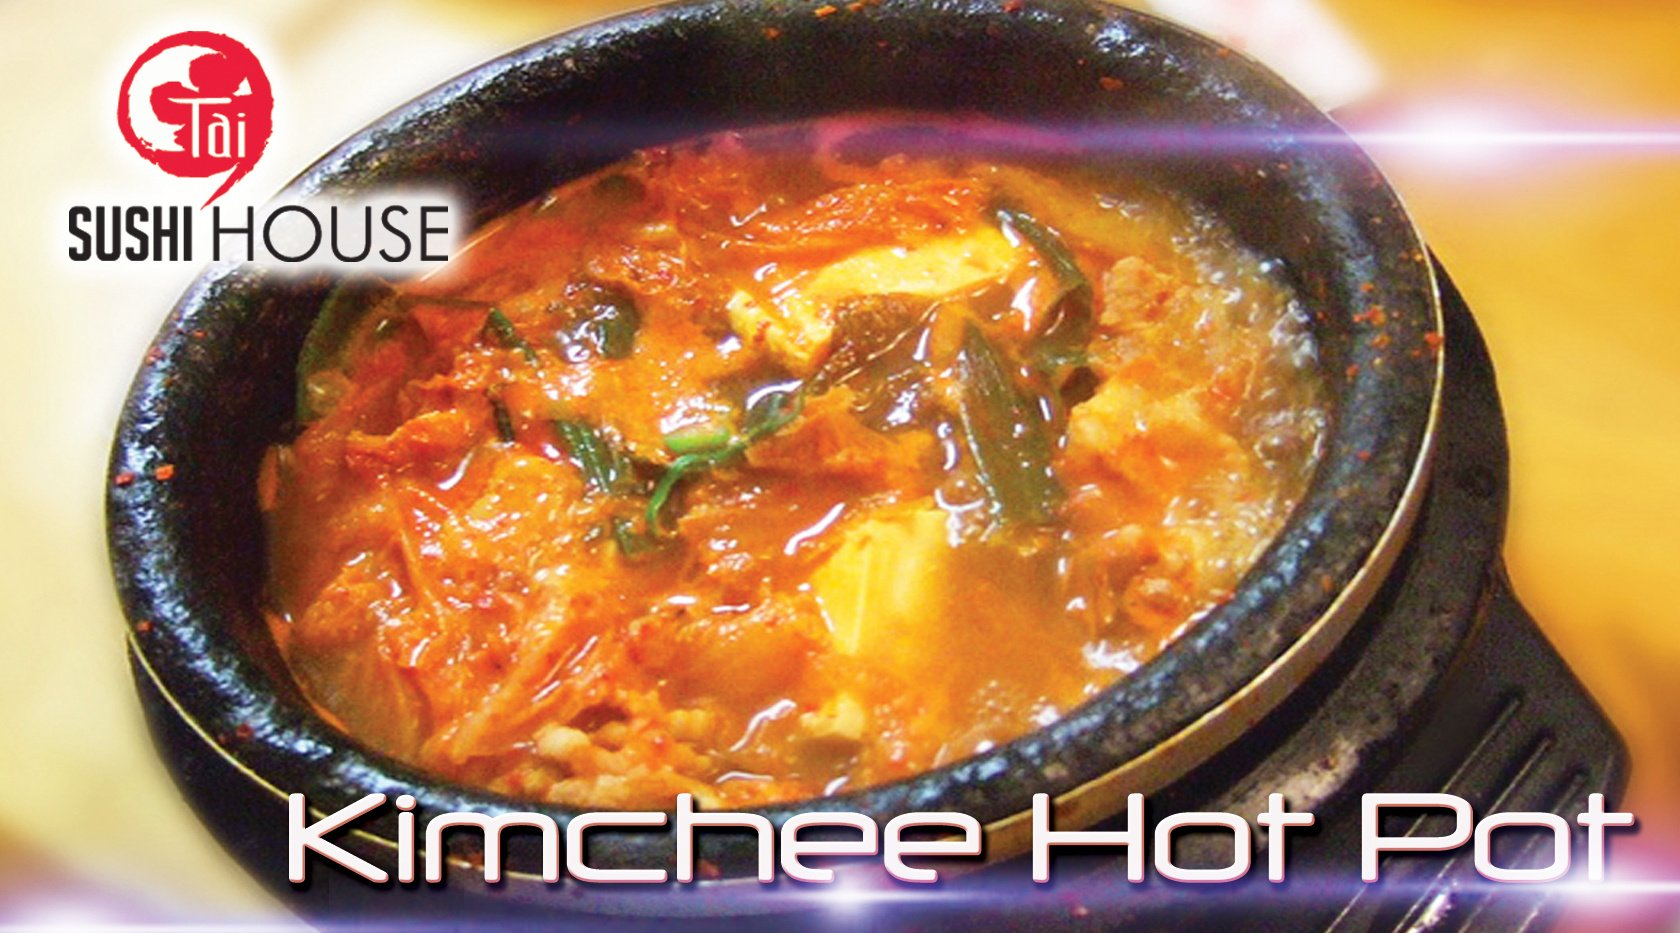 Kimchee Hot Pot